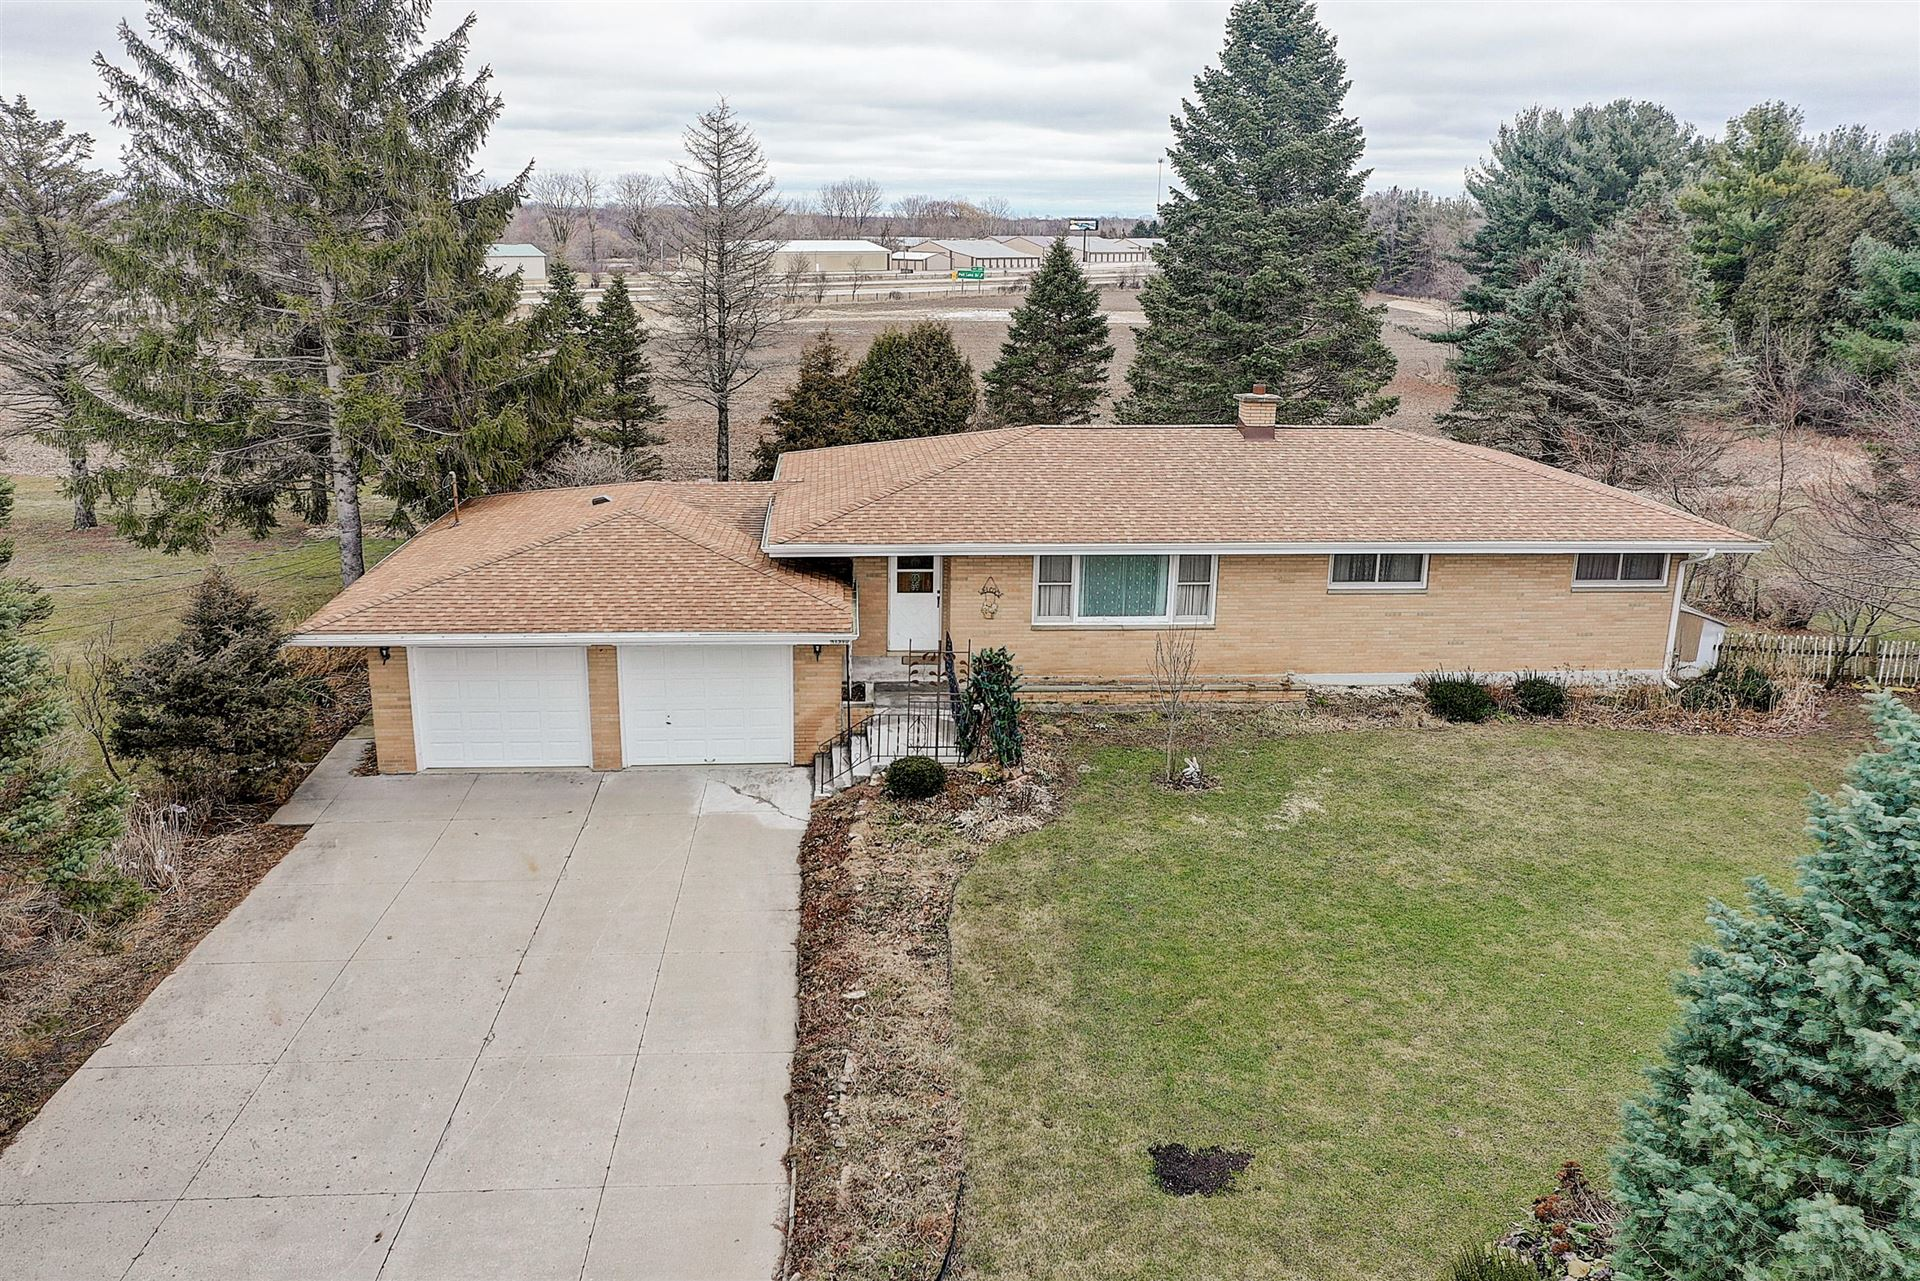 N1590 Daisy Dr, Bloomfield, WI 53128 - #: 1674813